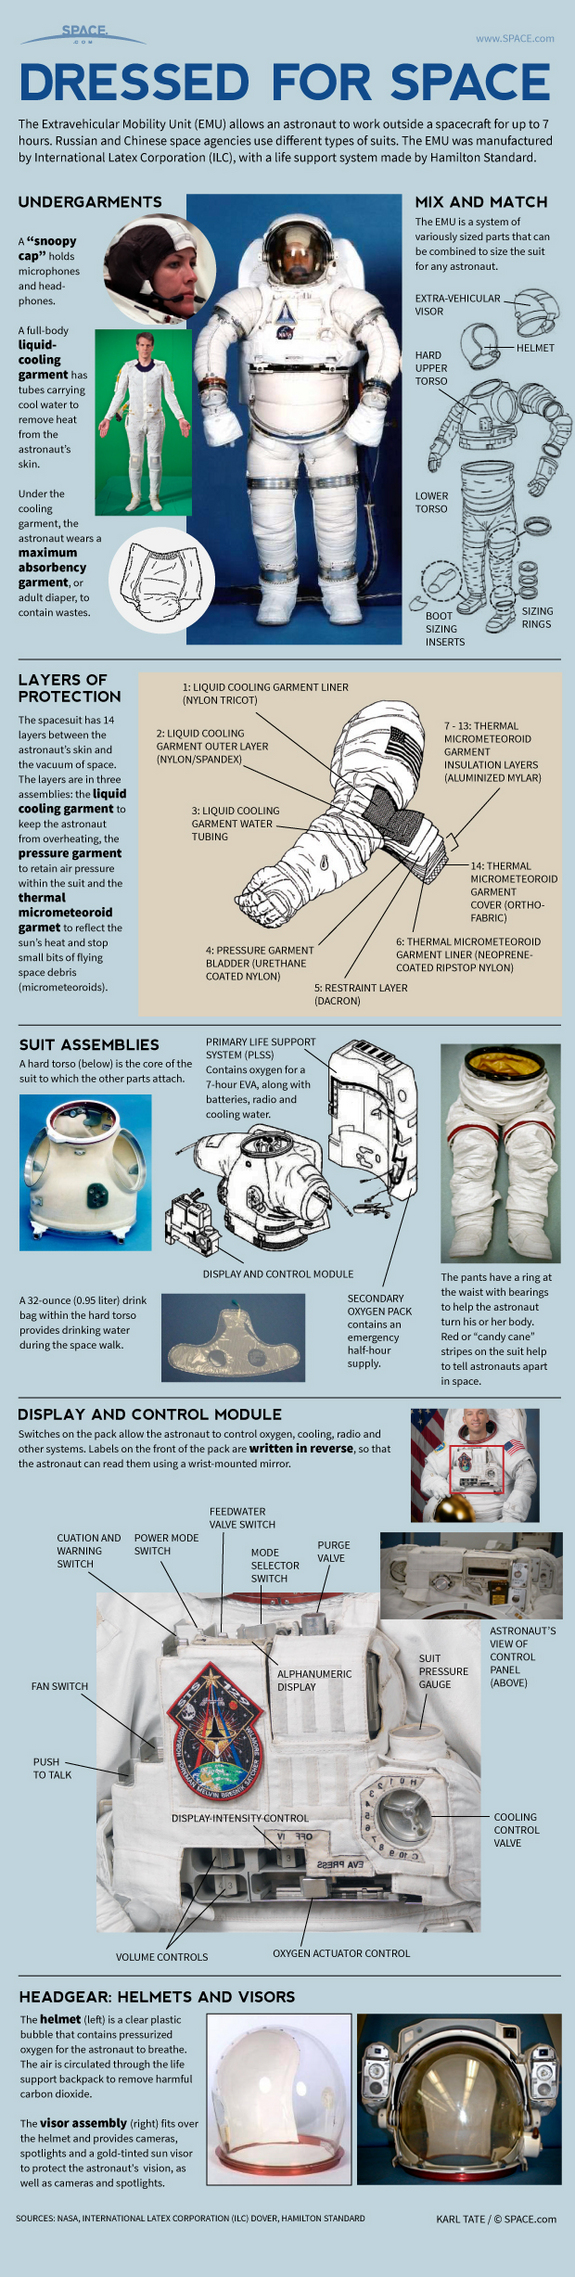 Find out how space suits keep astronauts alive in this SPACE.com infographic.